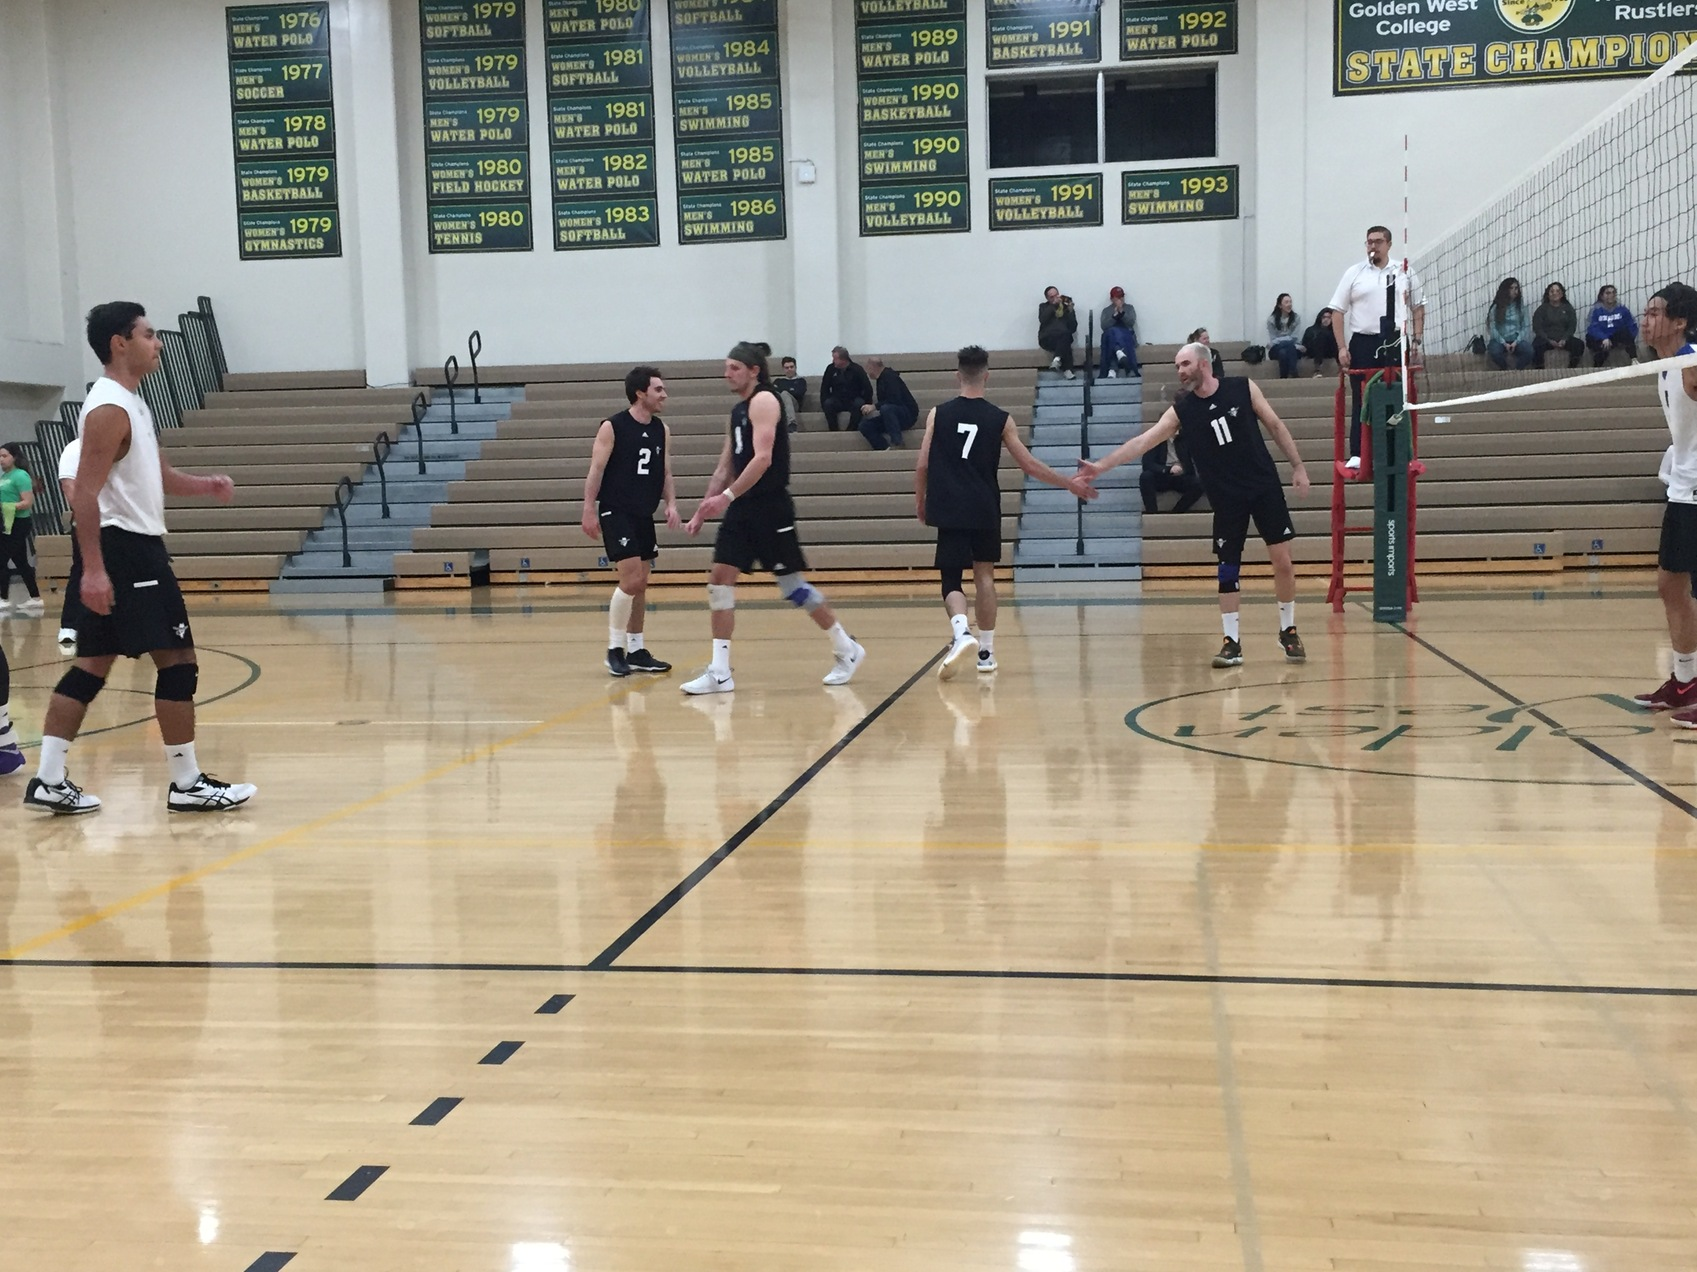 M Volleyball: Pank and Ludlum Lead Rustlers to 5 Set Victory